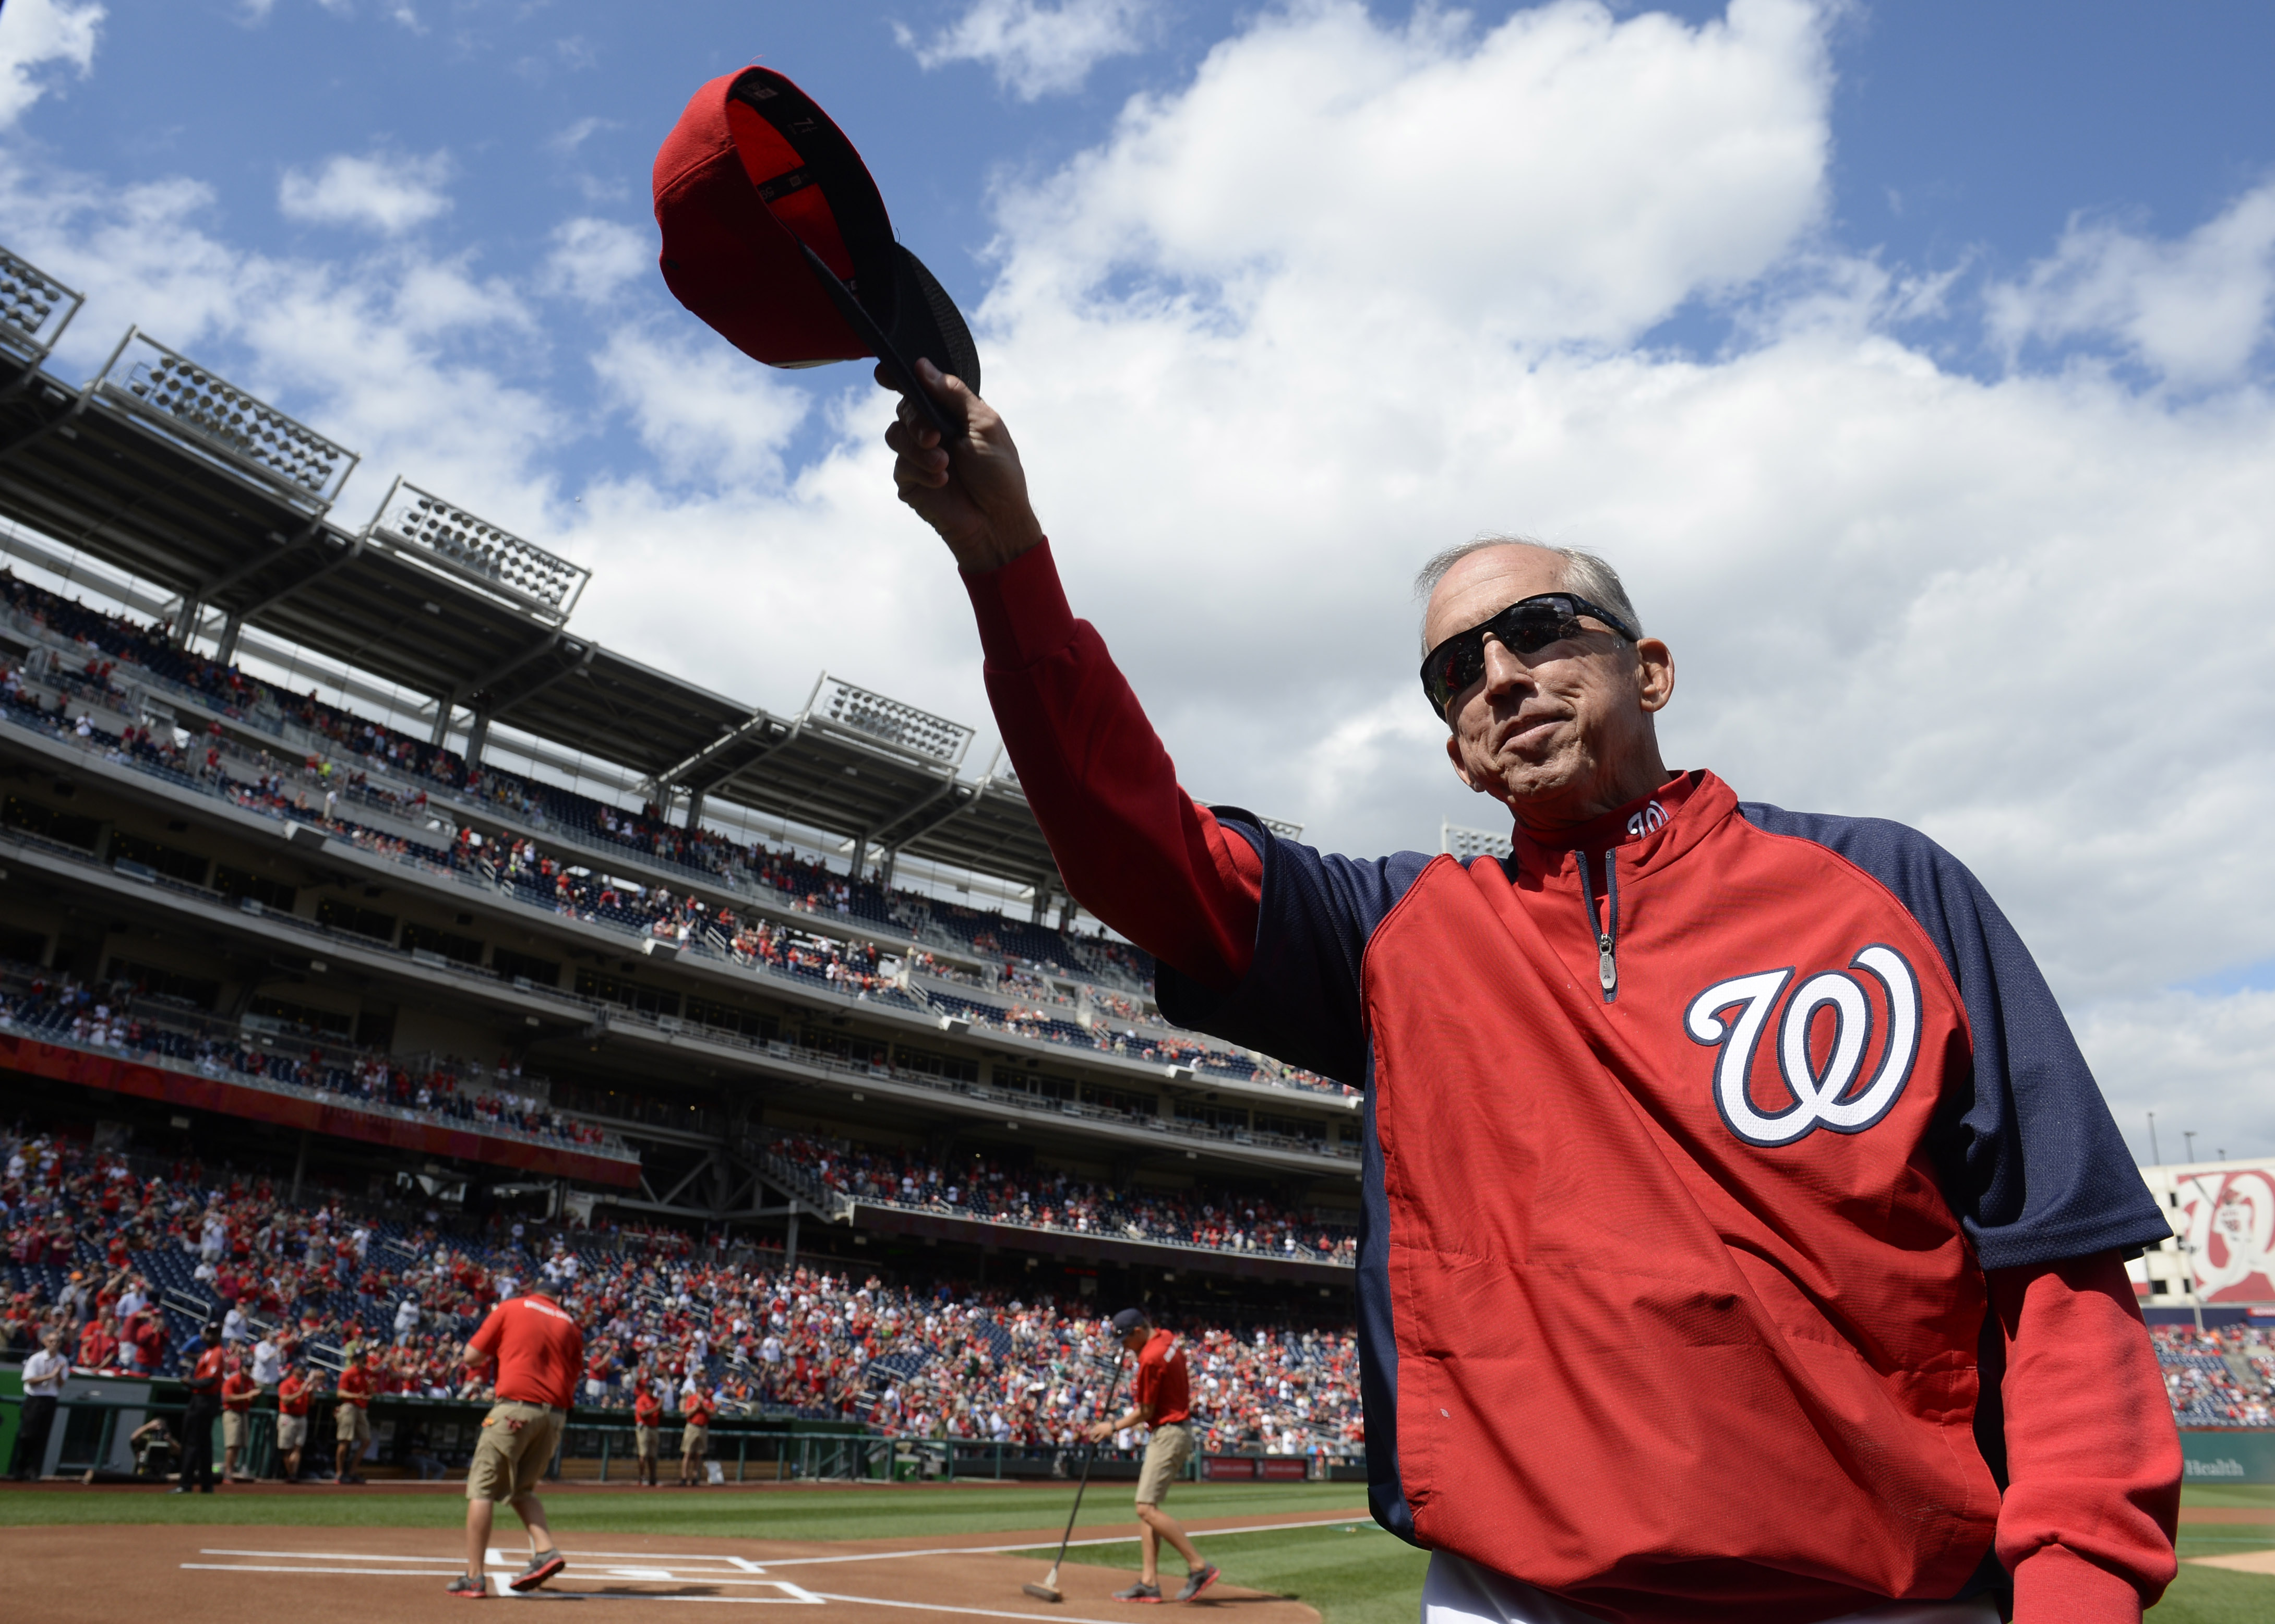 FILE - Im this Sept. 22, 2013, file photo, Washington National manager Davey Johnson tips his cap to the crowd before a baseball game against the Miami Marlins at Nationals Park in Washington. A former All-Star infielder who had already managed three team